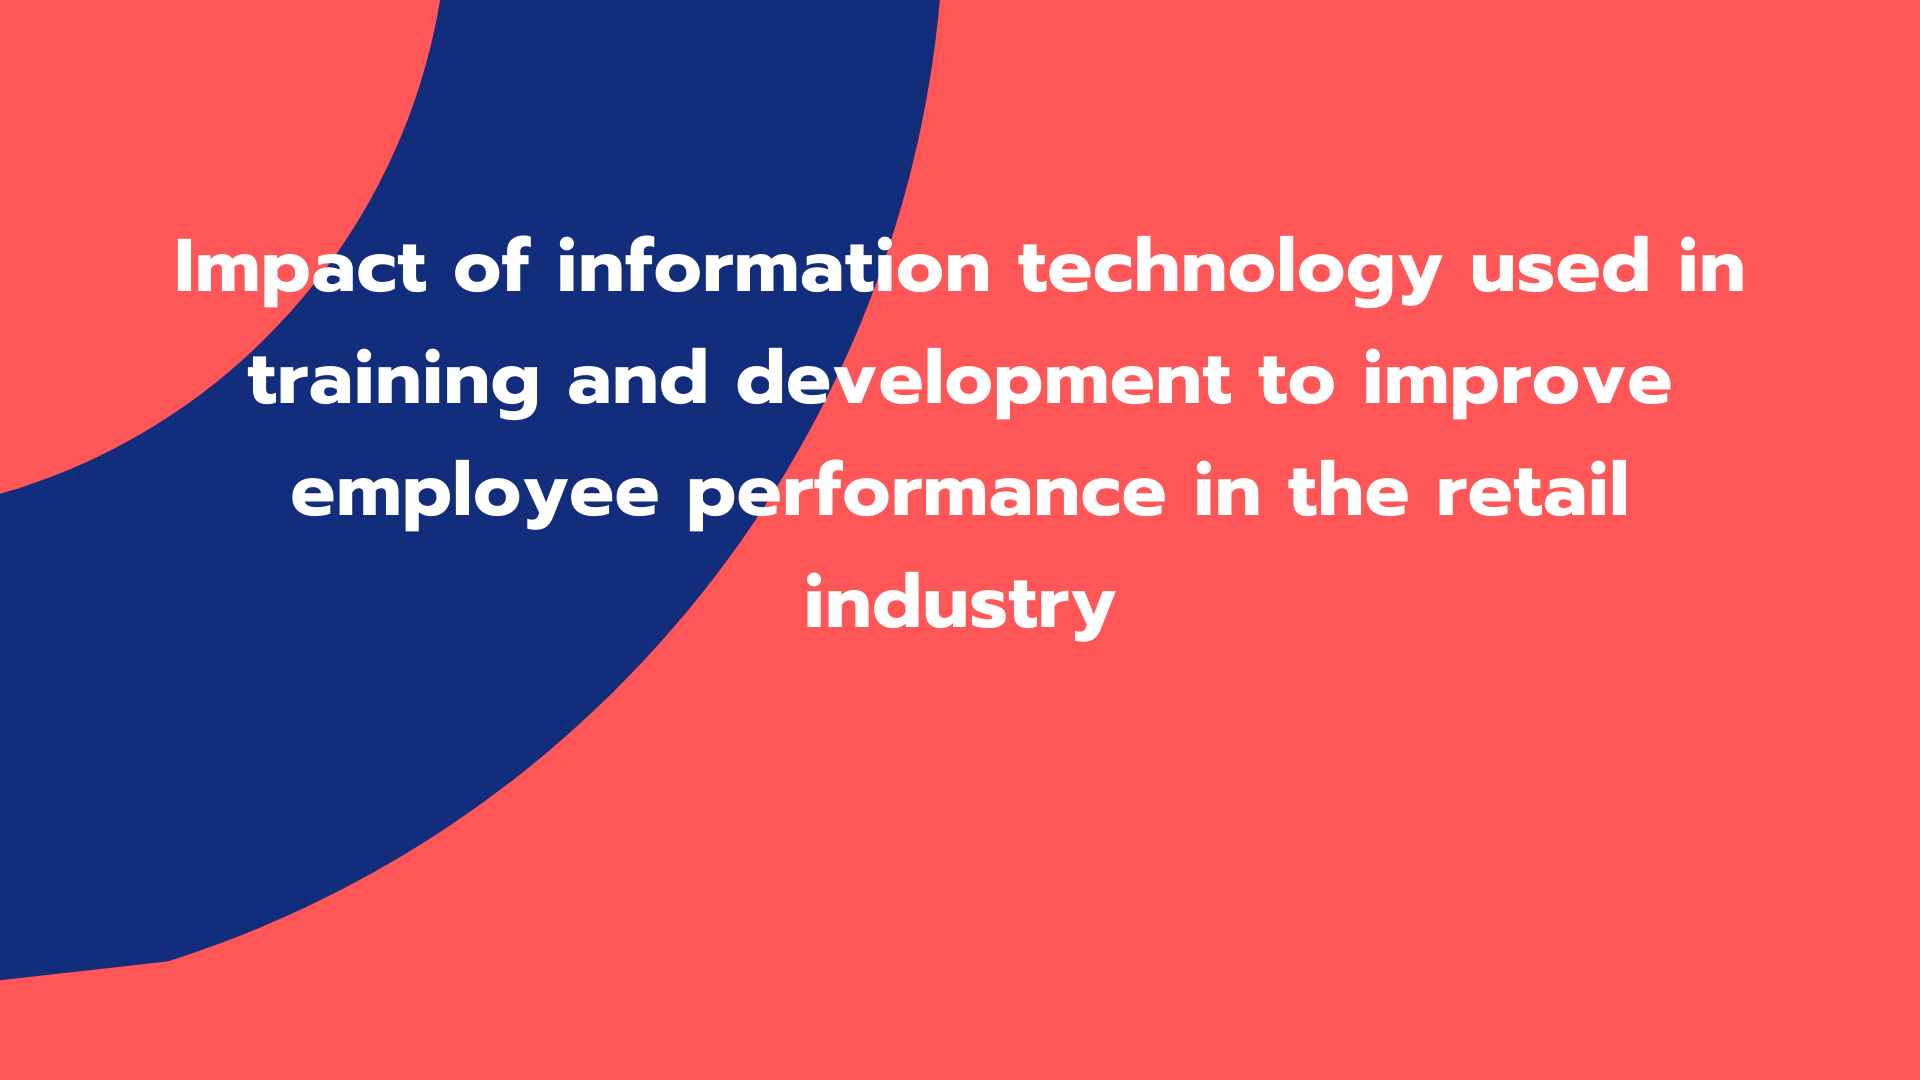 Impact of information technology used in training and development